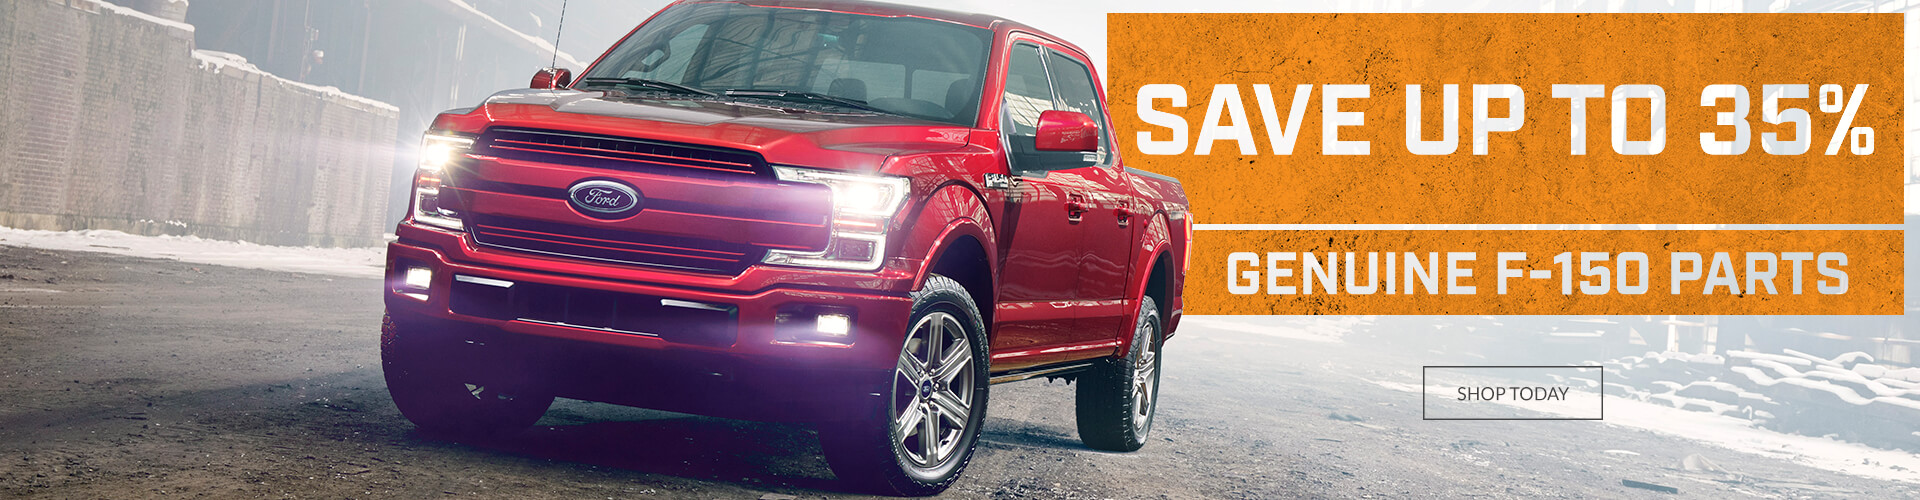 Save up to 35% on Ford F-150 Parts